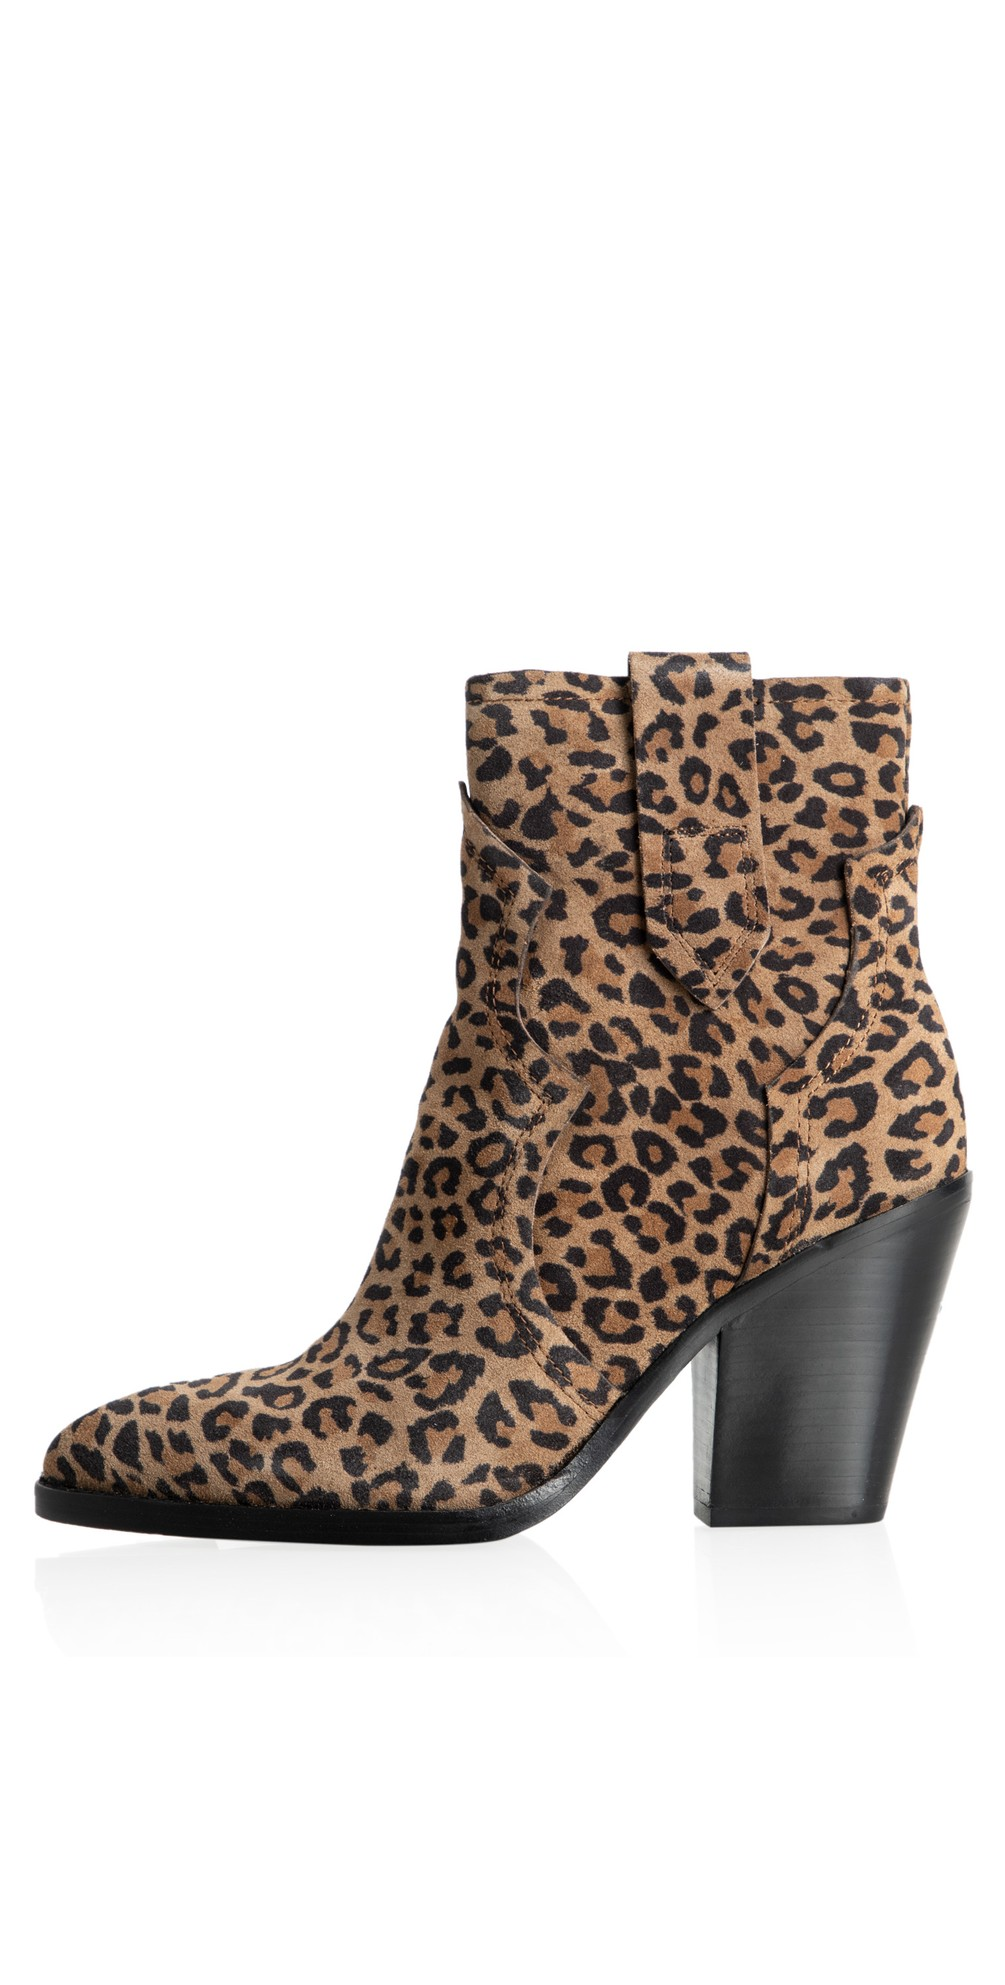 Esquire Leopard Print Heeled Boot main image